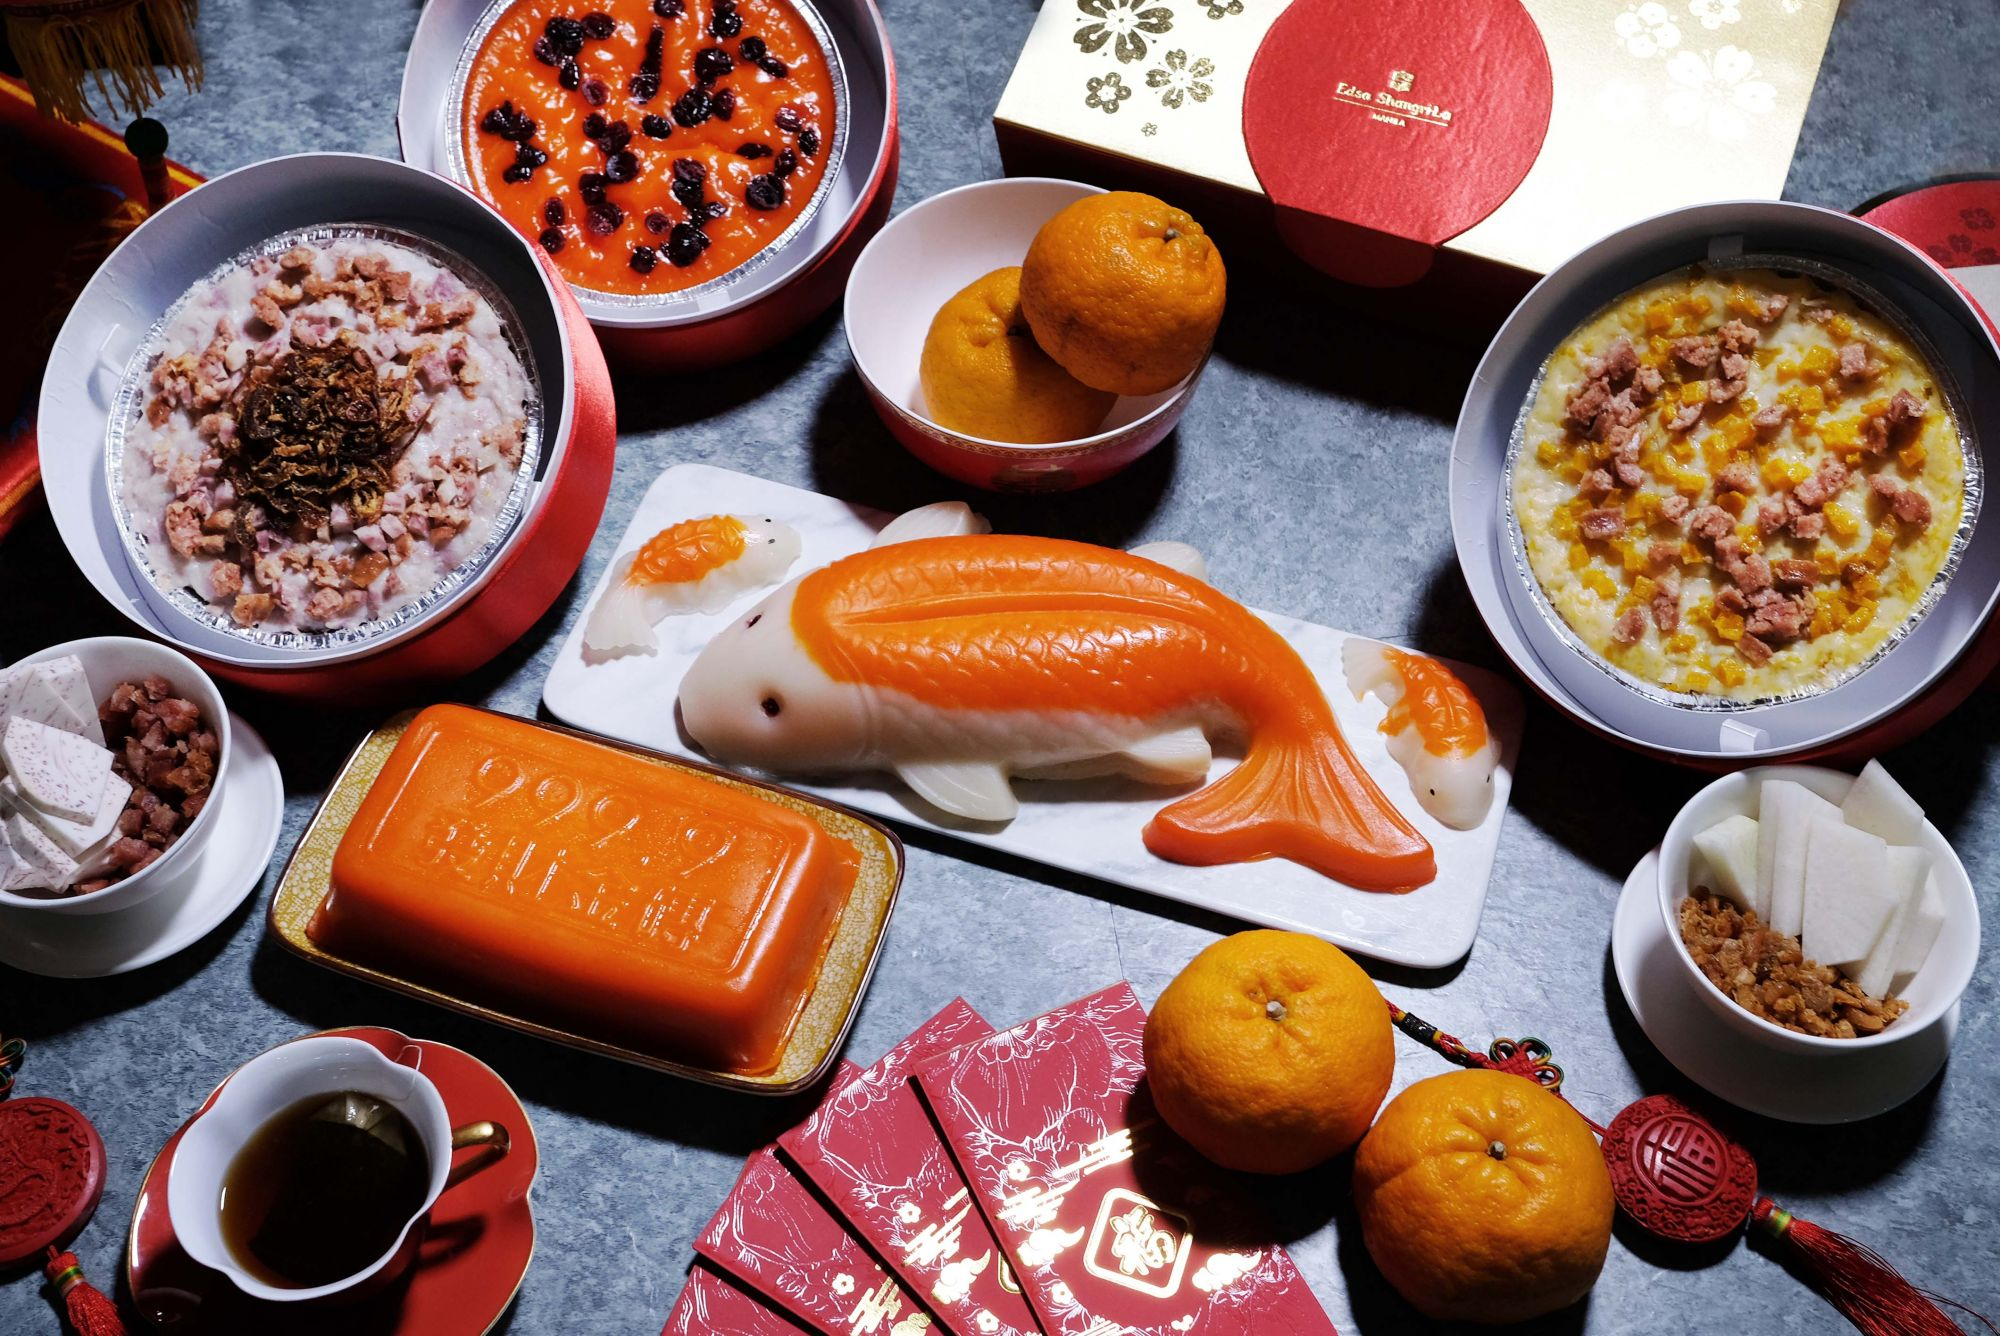 Enjoy Authentic Asian Specialties This Year Of The Ox 2021 At Edsa Shangri-La's Summer Palace